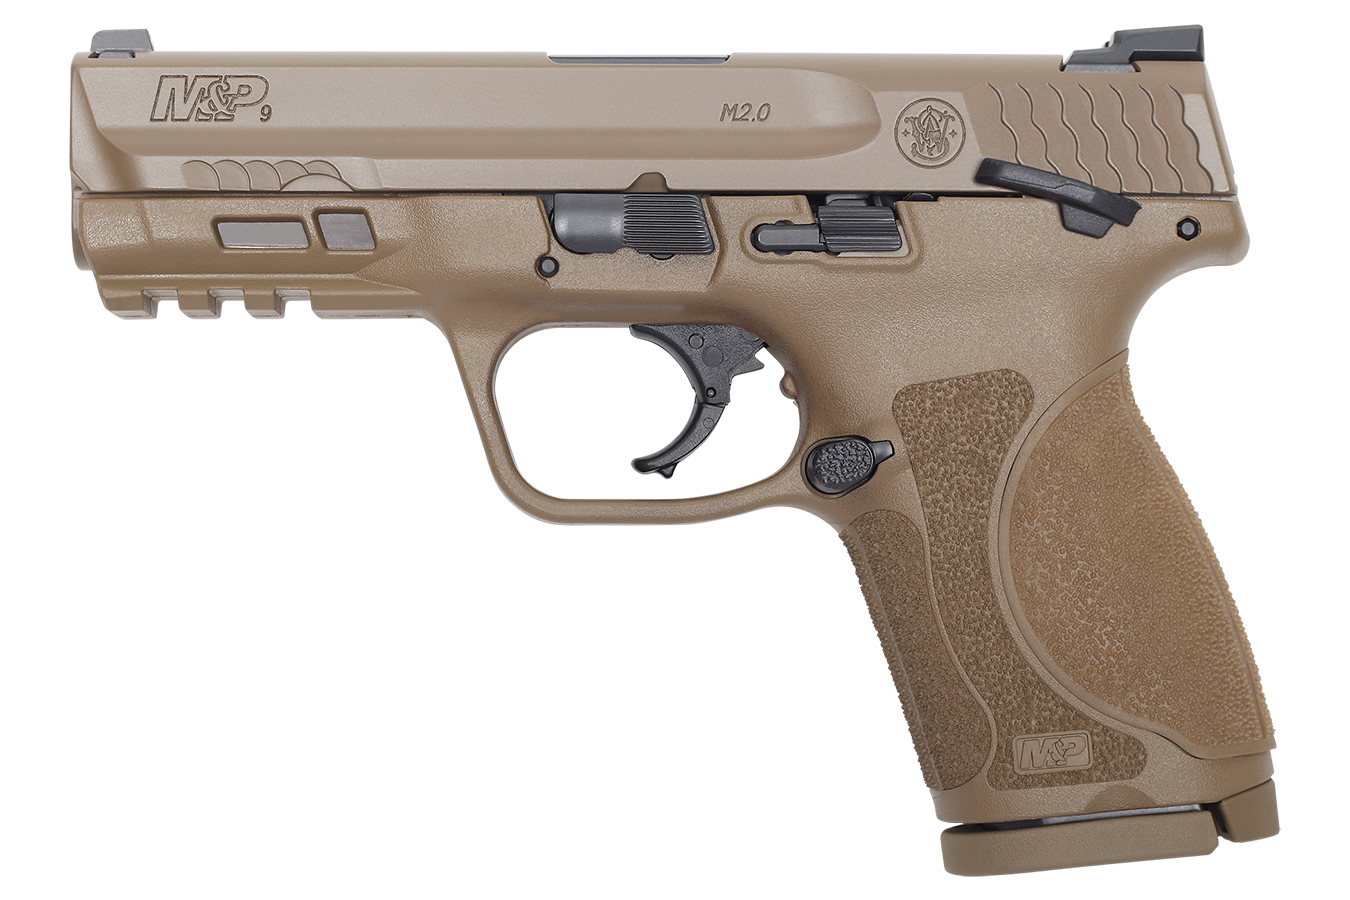 MP9 M2.0 COMPACT FDE 4-INCH W/ THUMB SAFETY